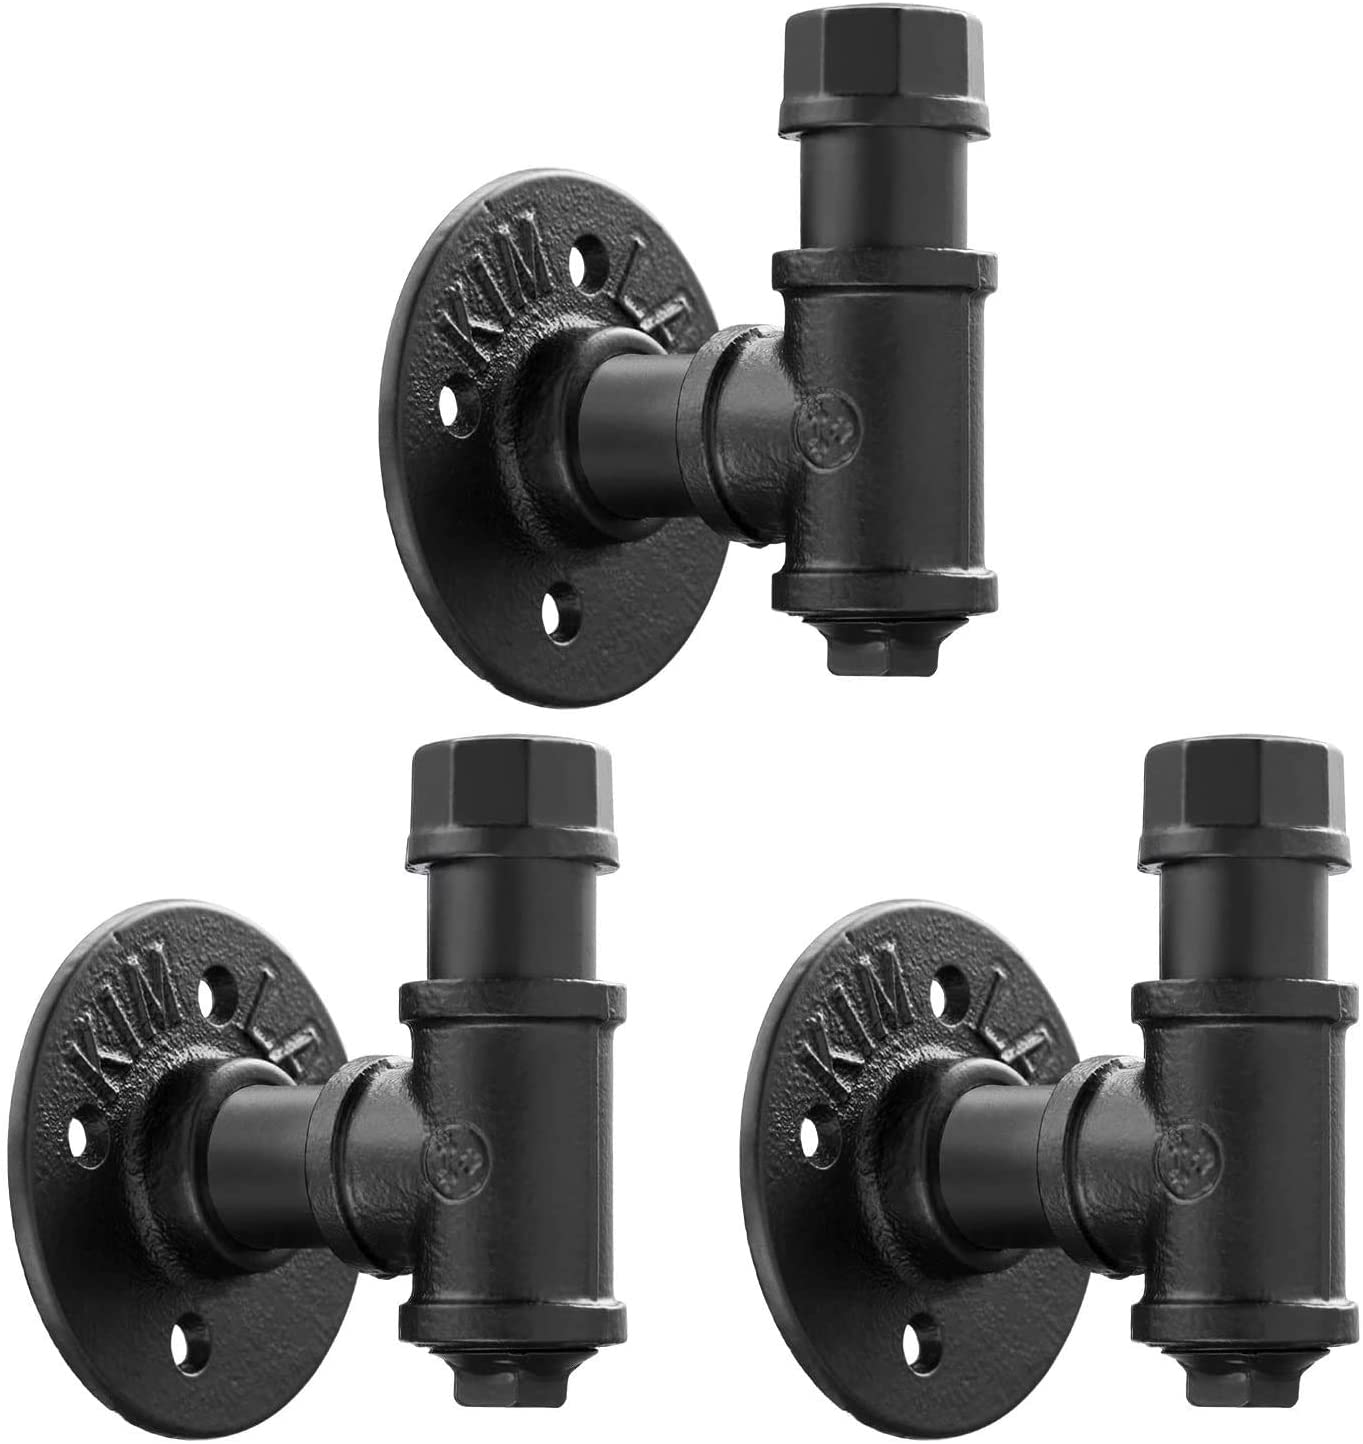 3 Pack Vintage Bathroom Robe and Towel Wall Hooks for Hanging, Elibbren Rustic Style Industrial Iron Pipe Coat Hook Wall Mounted Heavy Duty Farmhouse DIY, Mounting Hardware Included